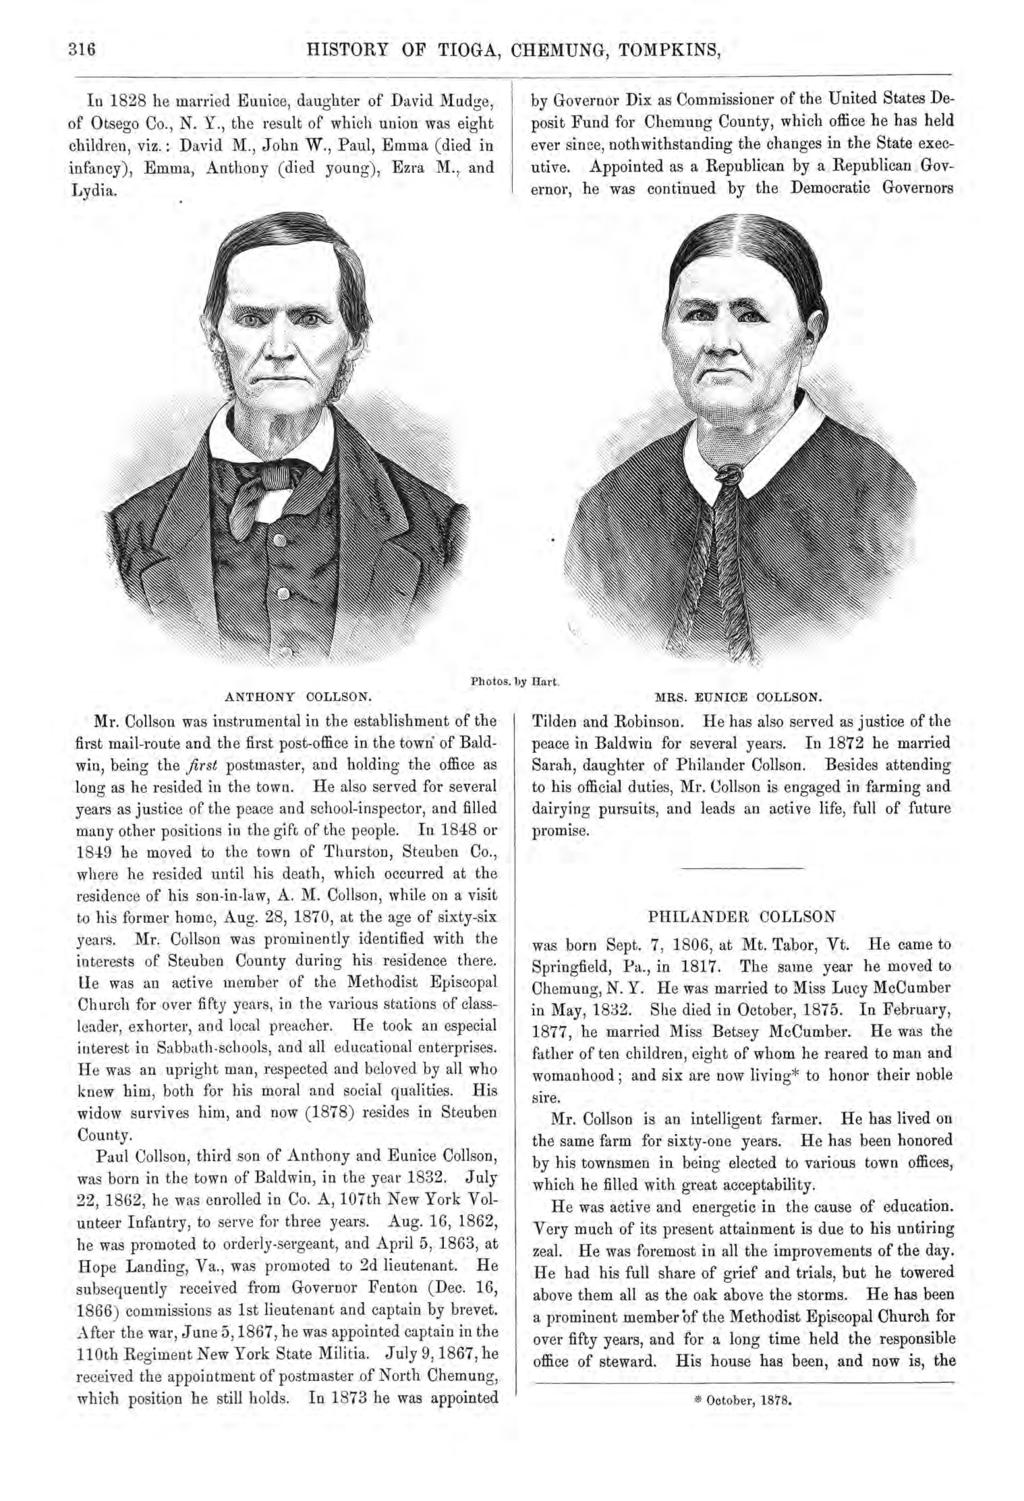 316 HISTORY OF TIOGA, CHEMUNG, TOMPKINS, In 1828 he married Eunice, daughter of David Mudge, of Otsego Co., N. Y., the result of which union was eight children, viz. : David M., John W.